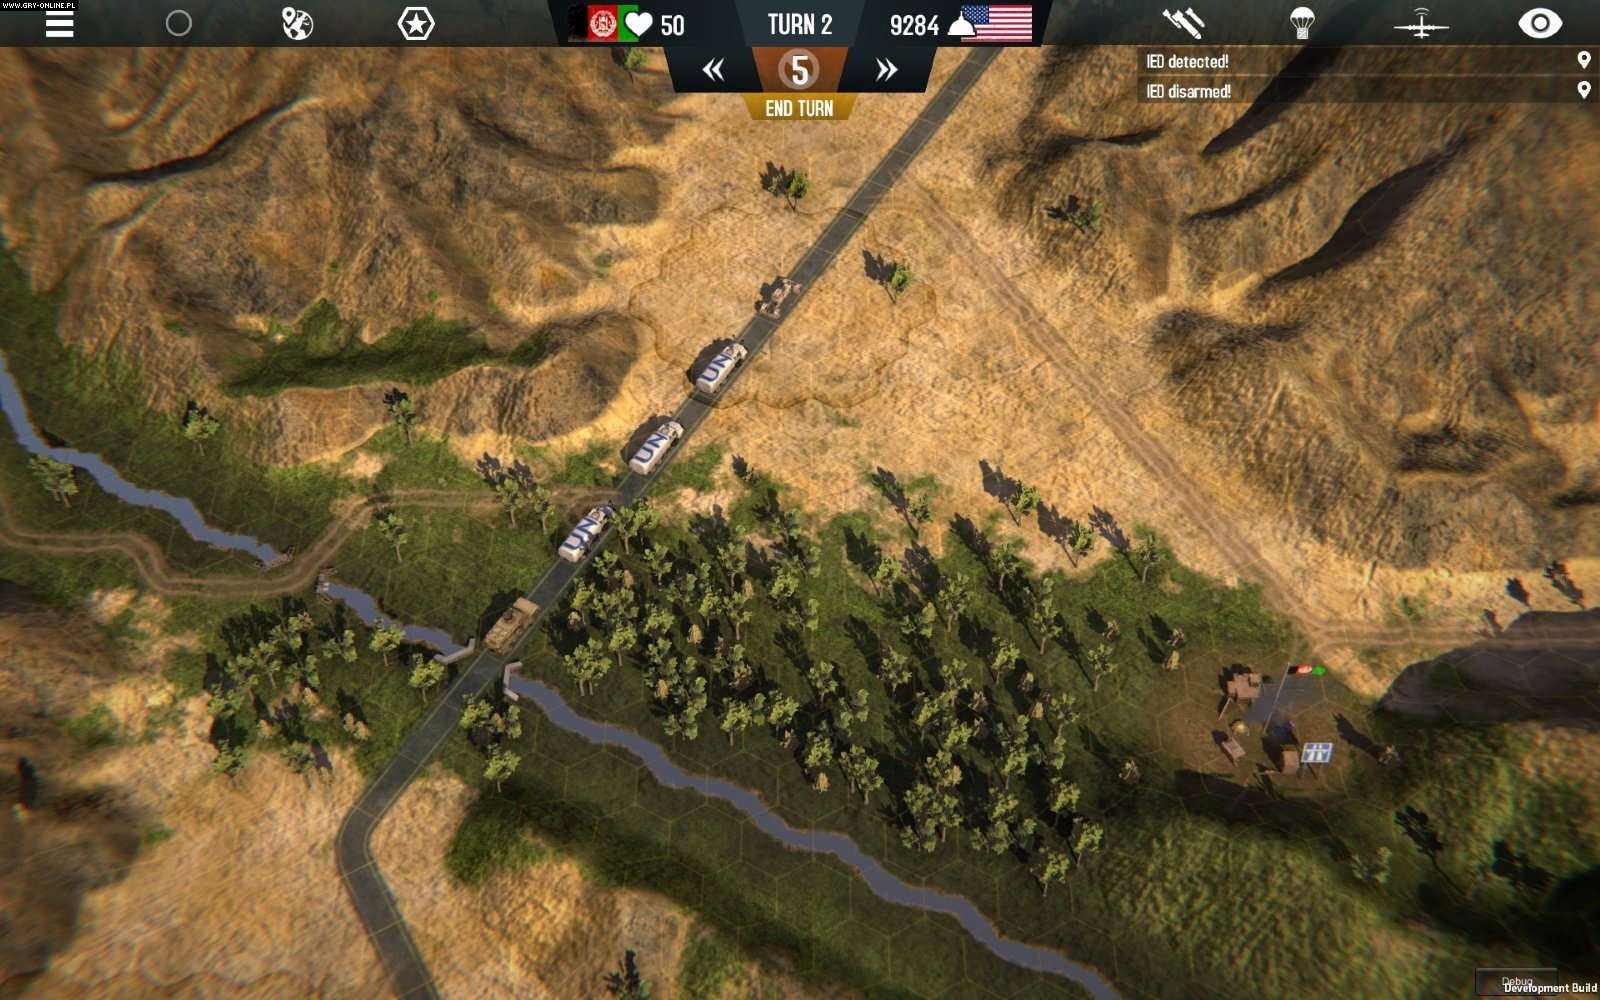 Afghanistan '11 PC Games Image 2/17, Every Single Soldier, Slitherine